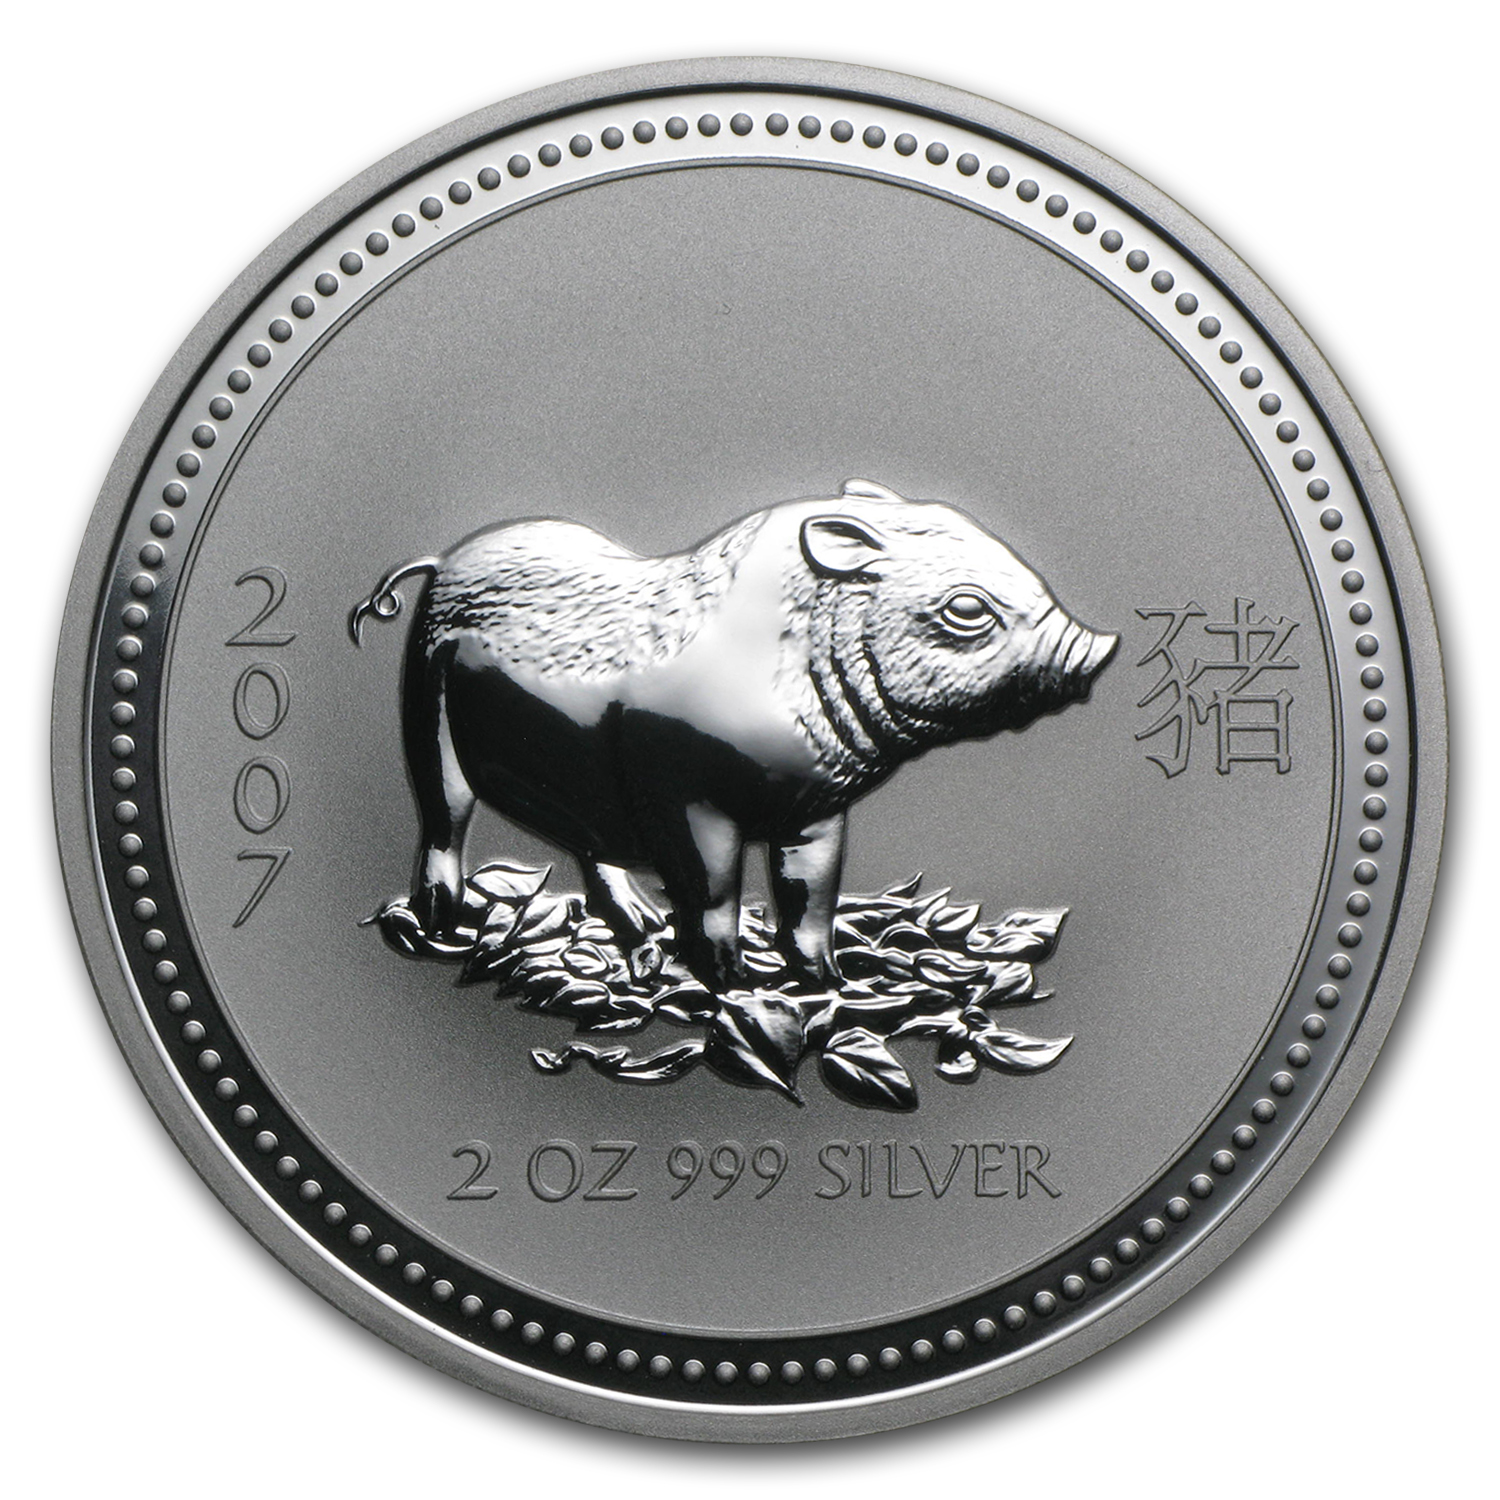 2007 2 oz Silver Australian Year of the Pig BU